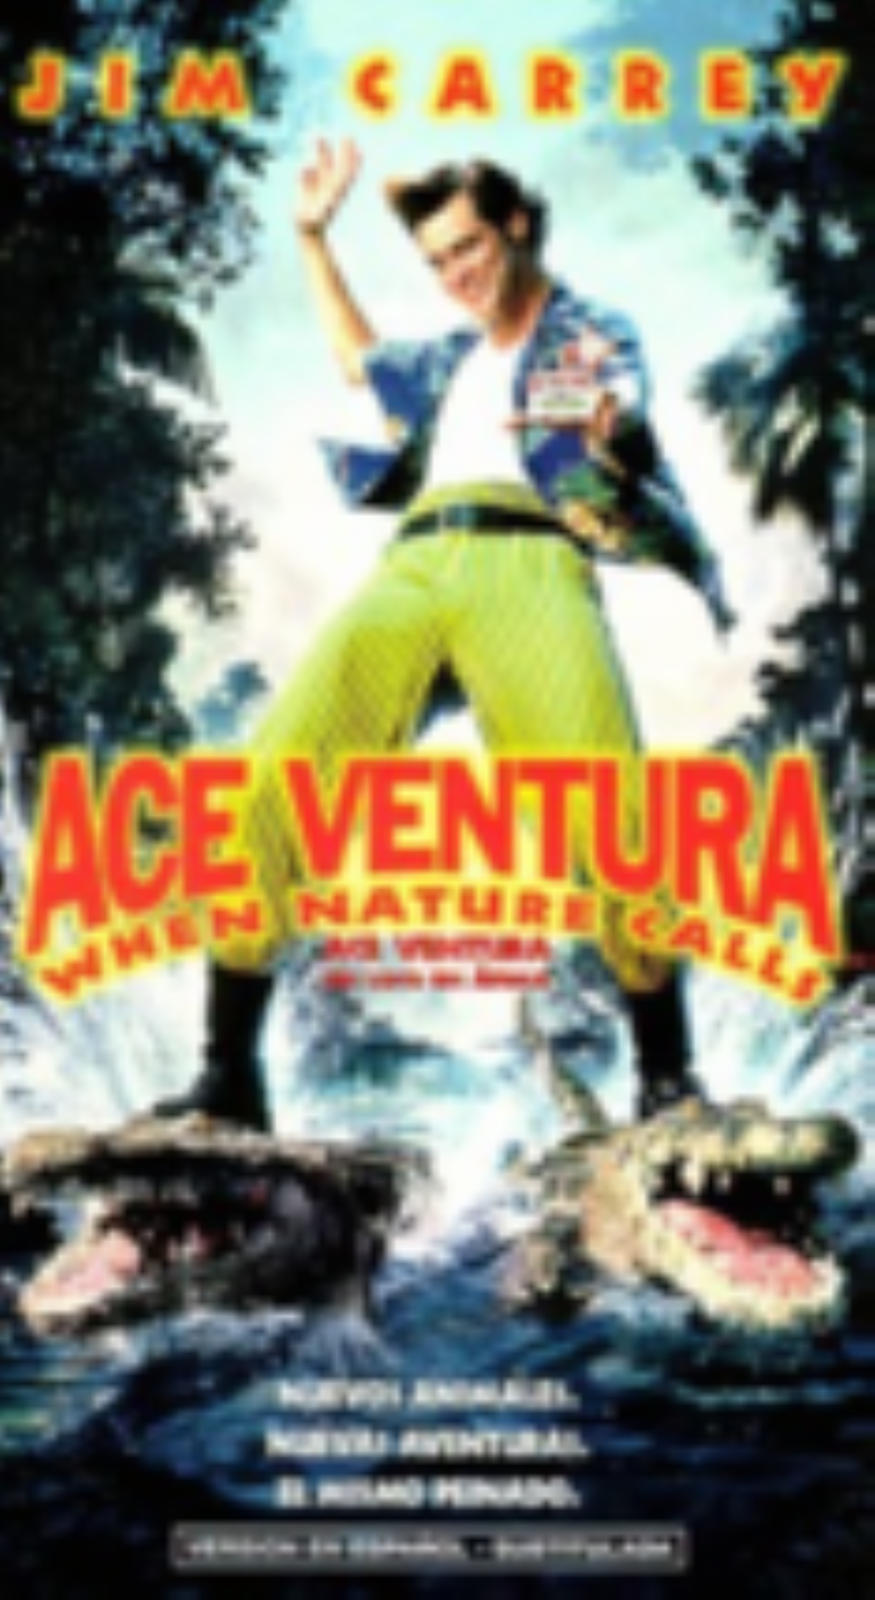 Ace Ventura: When Nature Calls Vhs